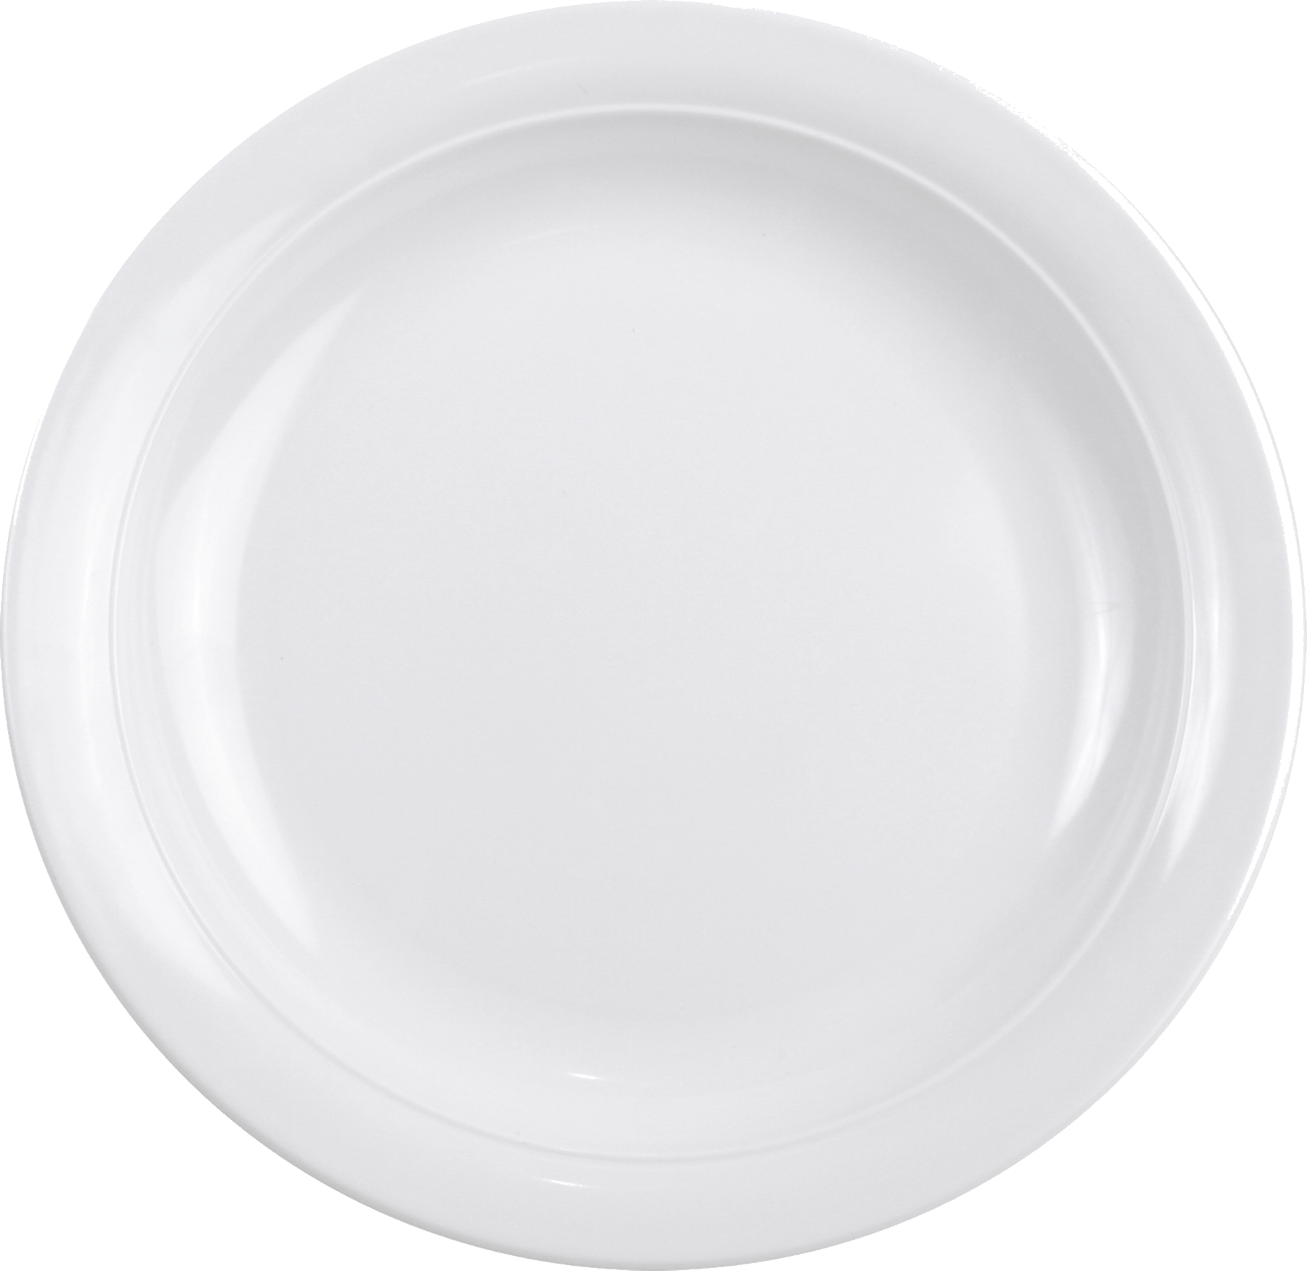 White Plate PNG Image.